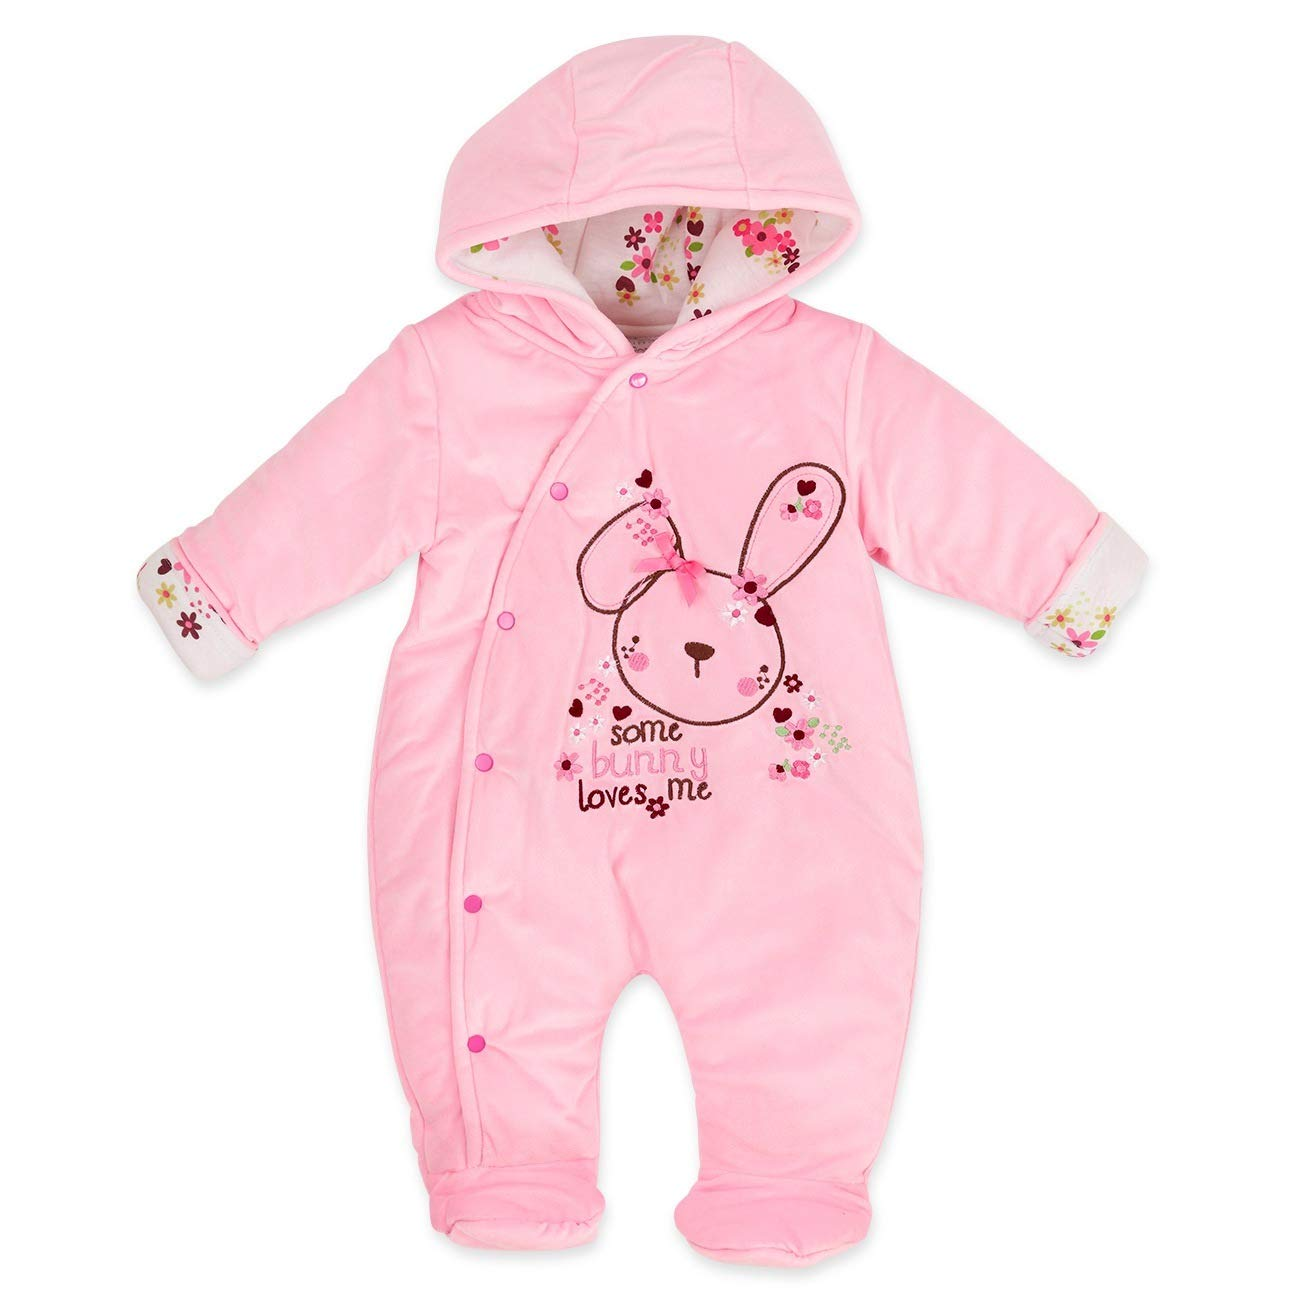 Pitter Patter Snowsuit-41041